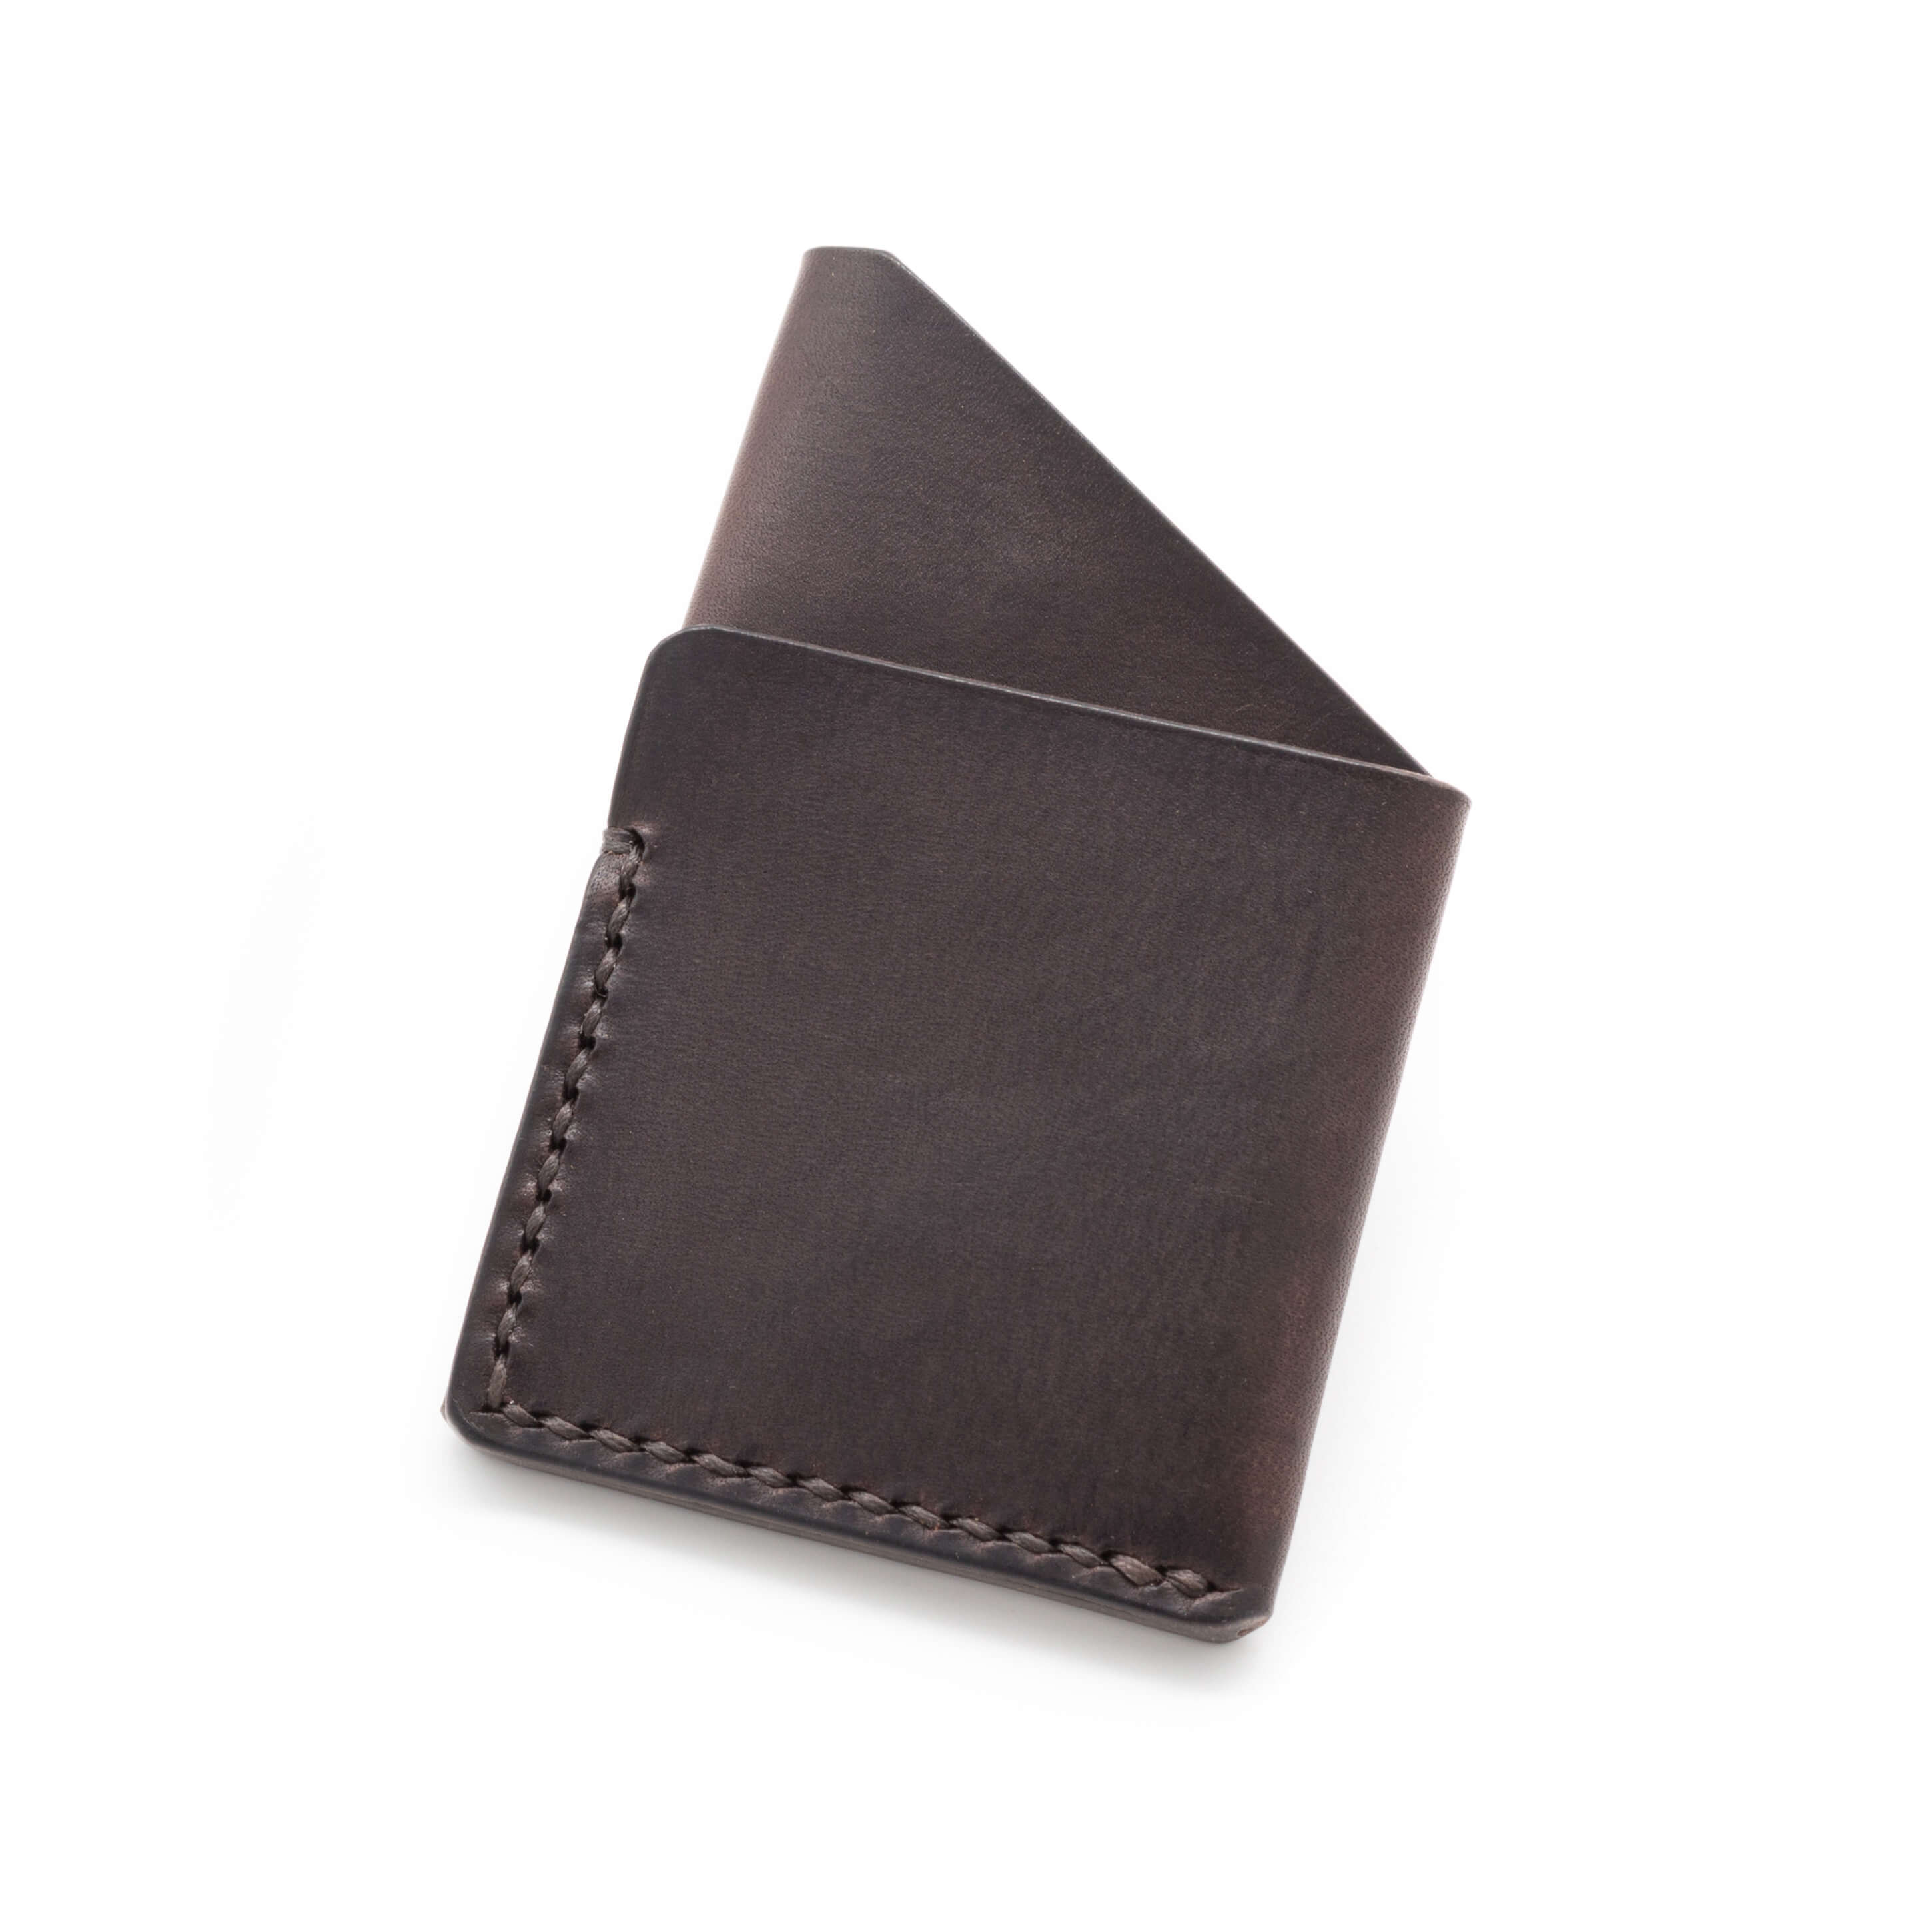 Leather card holder in Dark Brown Leather handmade by Colville Leather